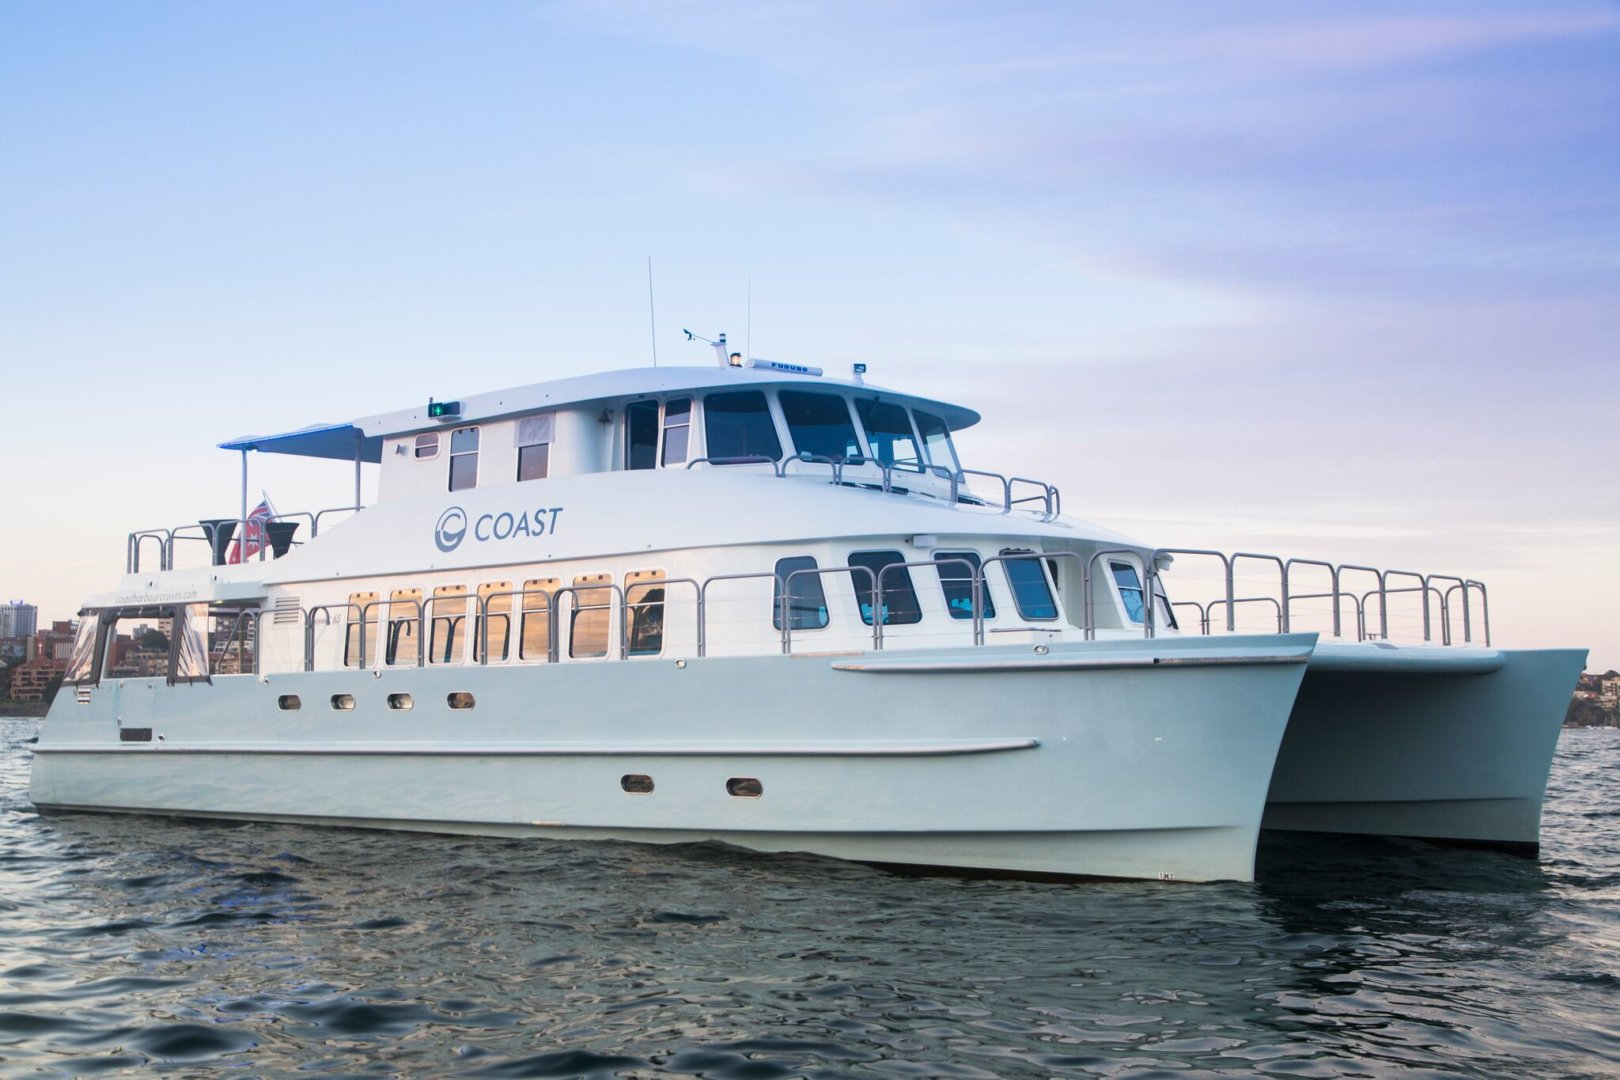 Coast - Big occasions on the water don't get much better than this excellent motor yacht.